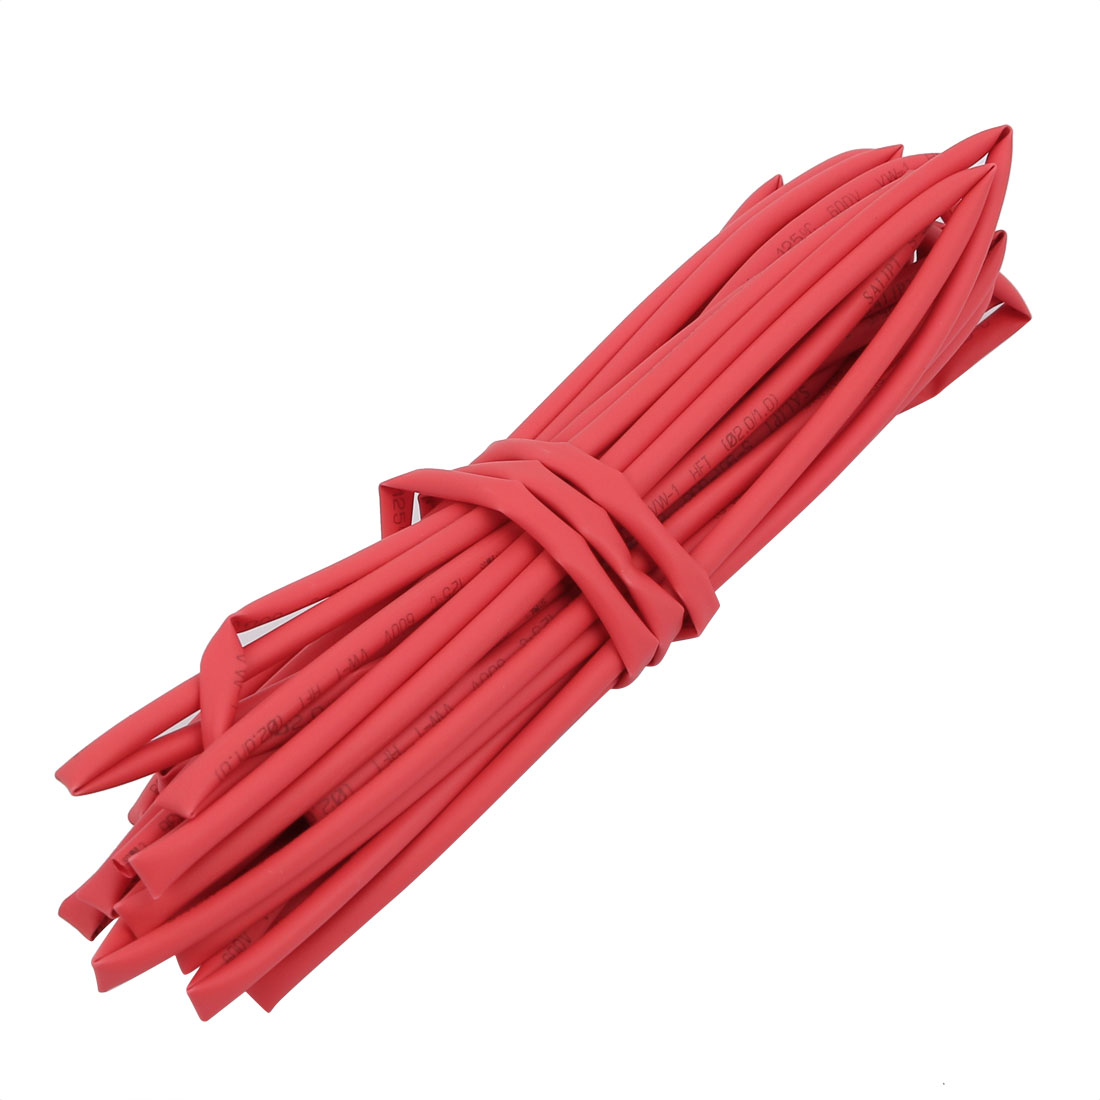 5M 0.08in Inner Dia Polyolefin Flame Retardant Tube Red for Wire Repairing